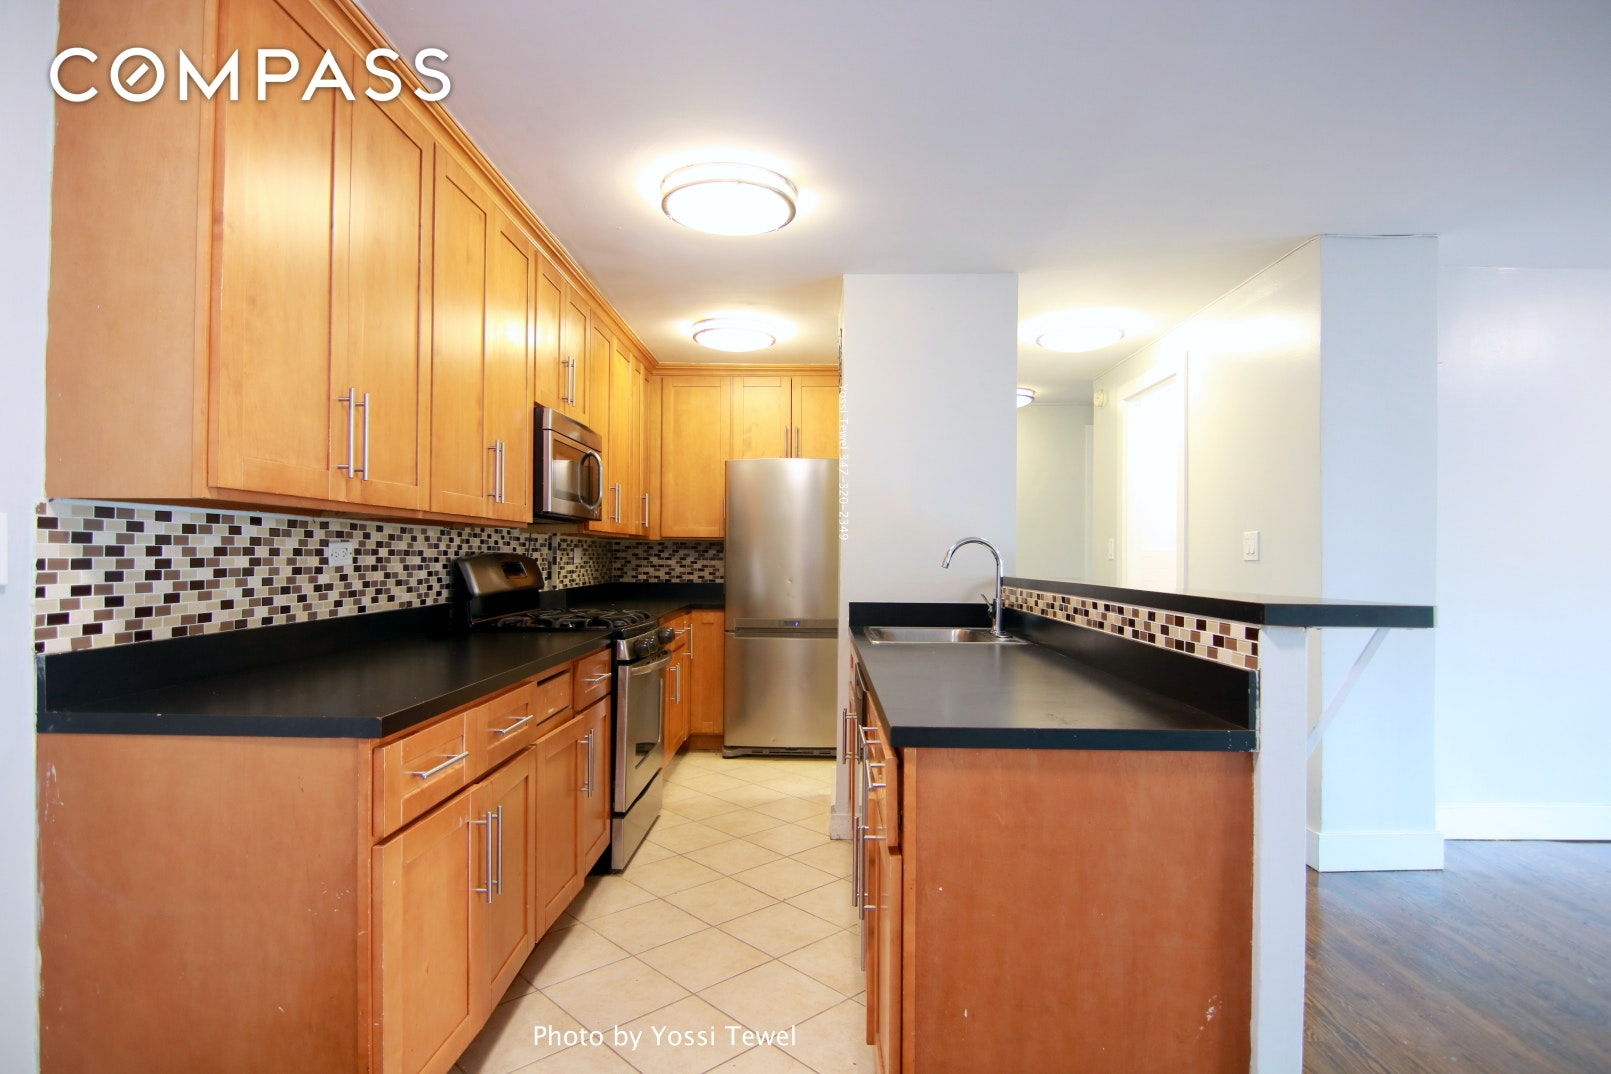 273 West 131st Street, Apt 3-F, Manhattan, New York 10027